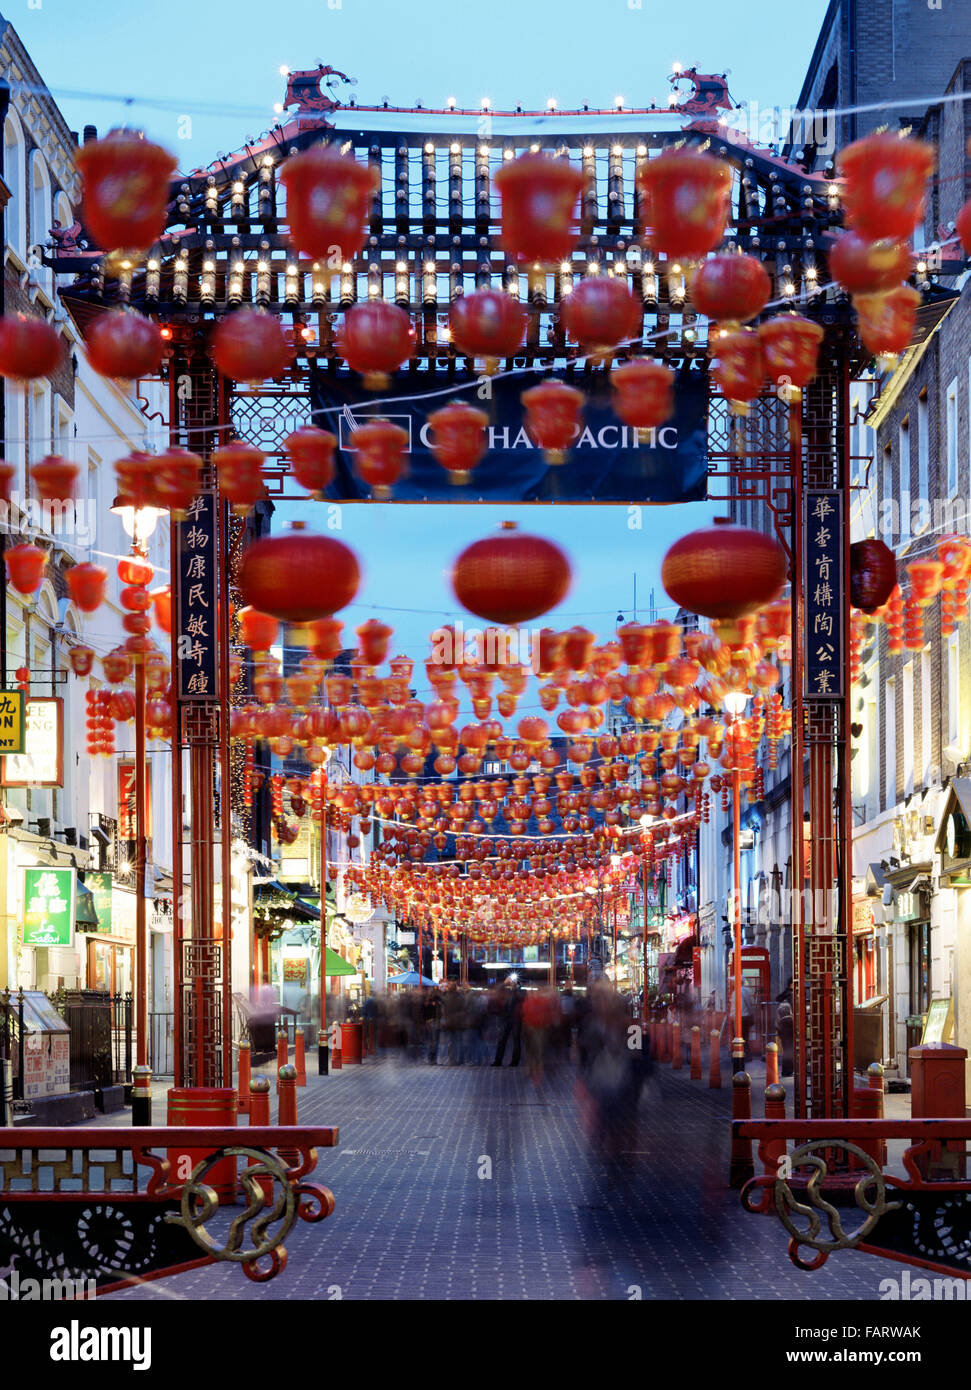 CHINATOWN, Gerrard Street, London. General view of china town at dusk showing red lanterns and entrance gateway. - Stock Image